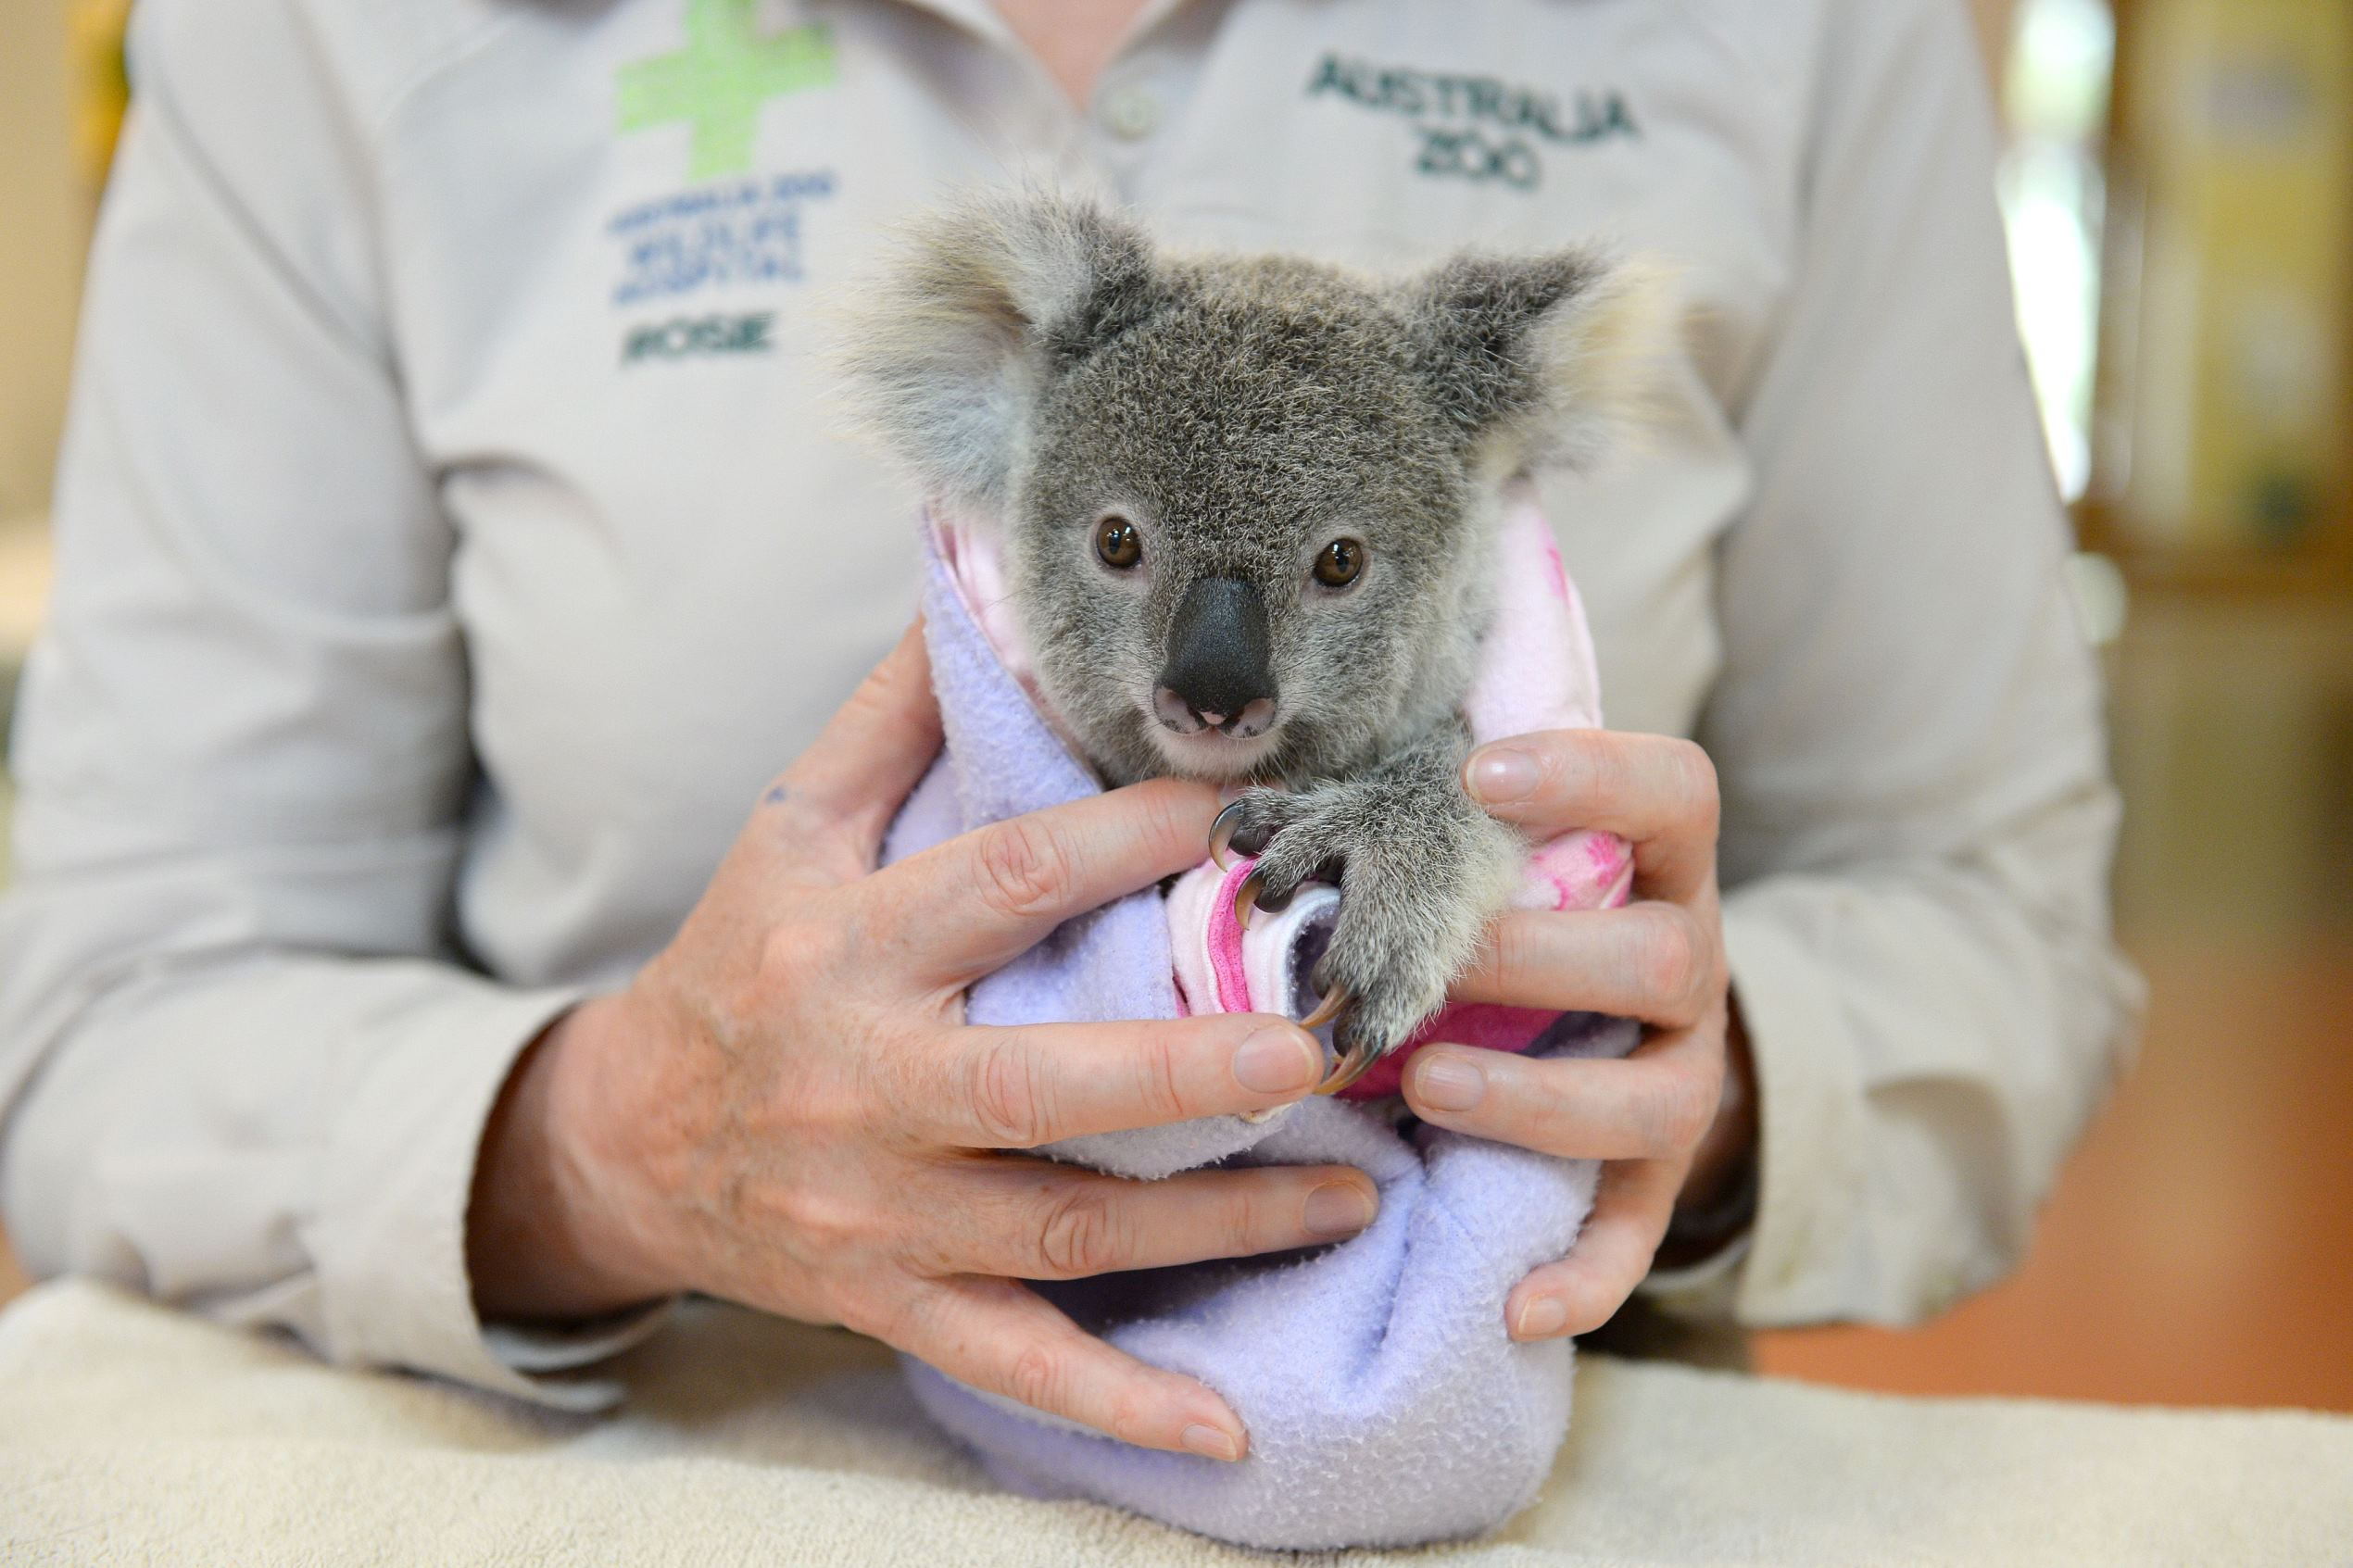 Слайд 2 из 67: Australia Zoo Wildlife Hospital prepares for yearly admission peak, Beerwah, Queensland, Australia - 19 Sep 2016 Shayne the koala joey and mother were hit by a car. The mother died